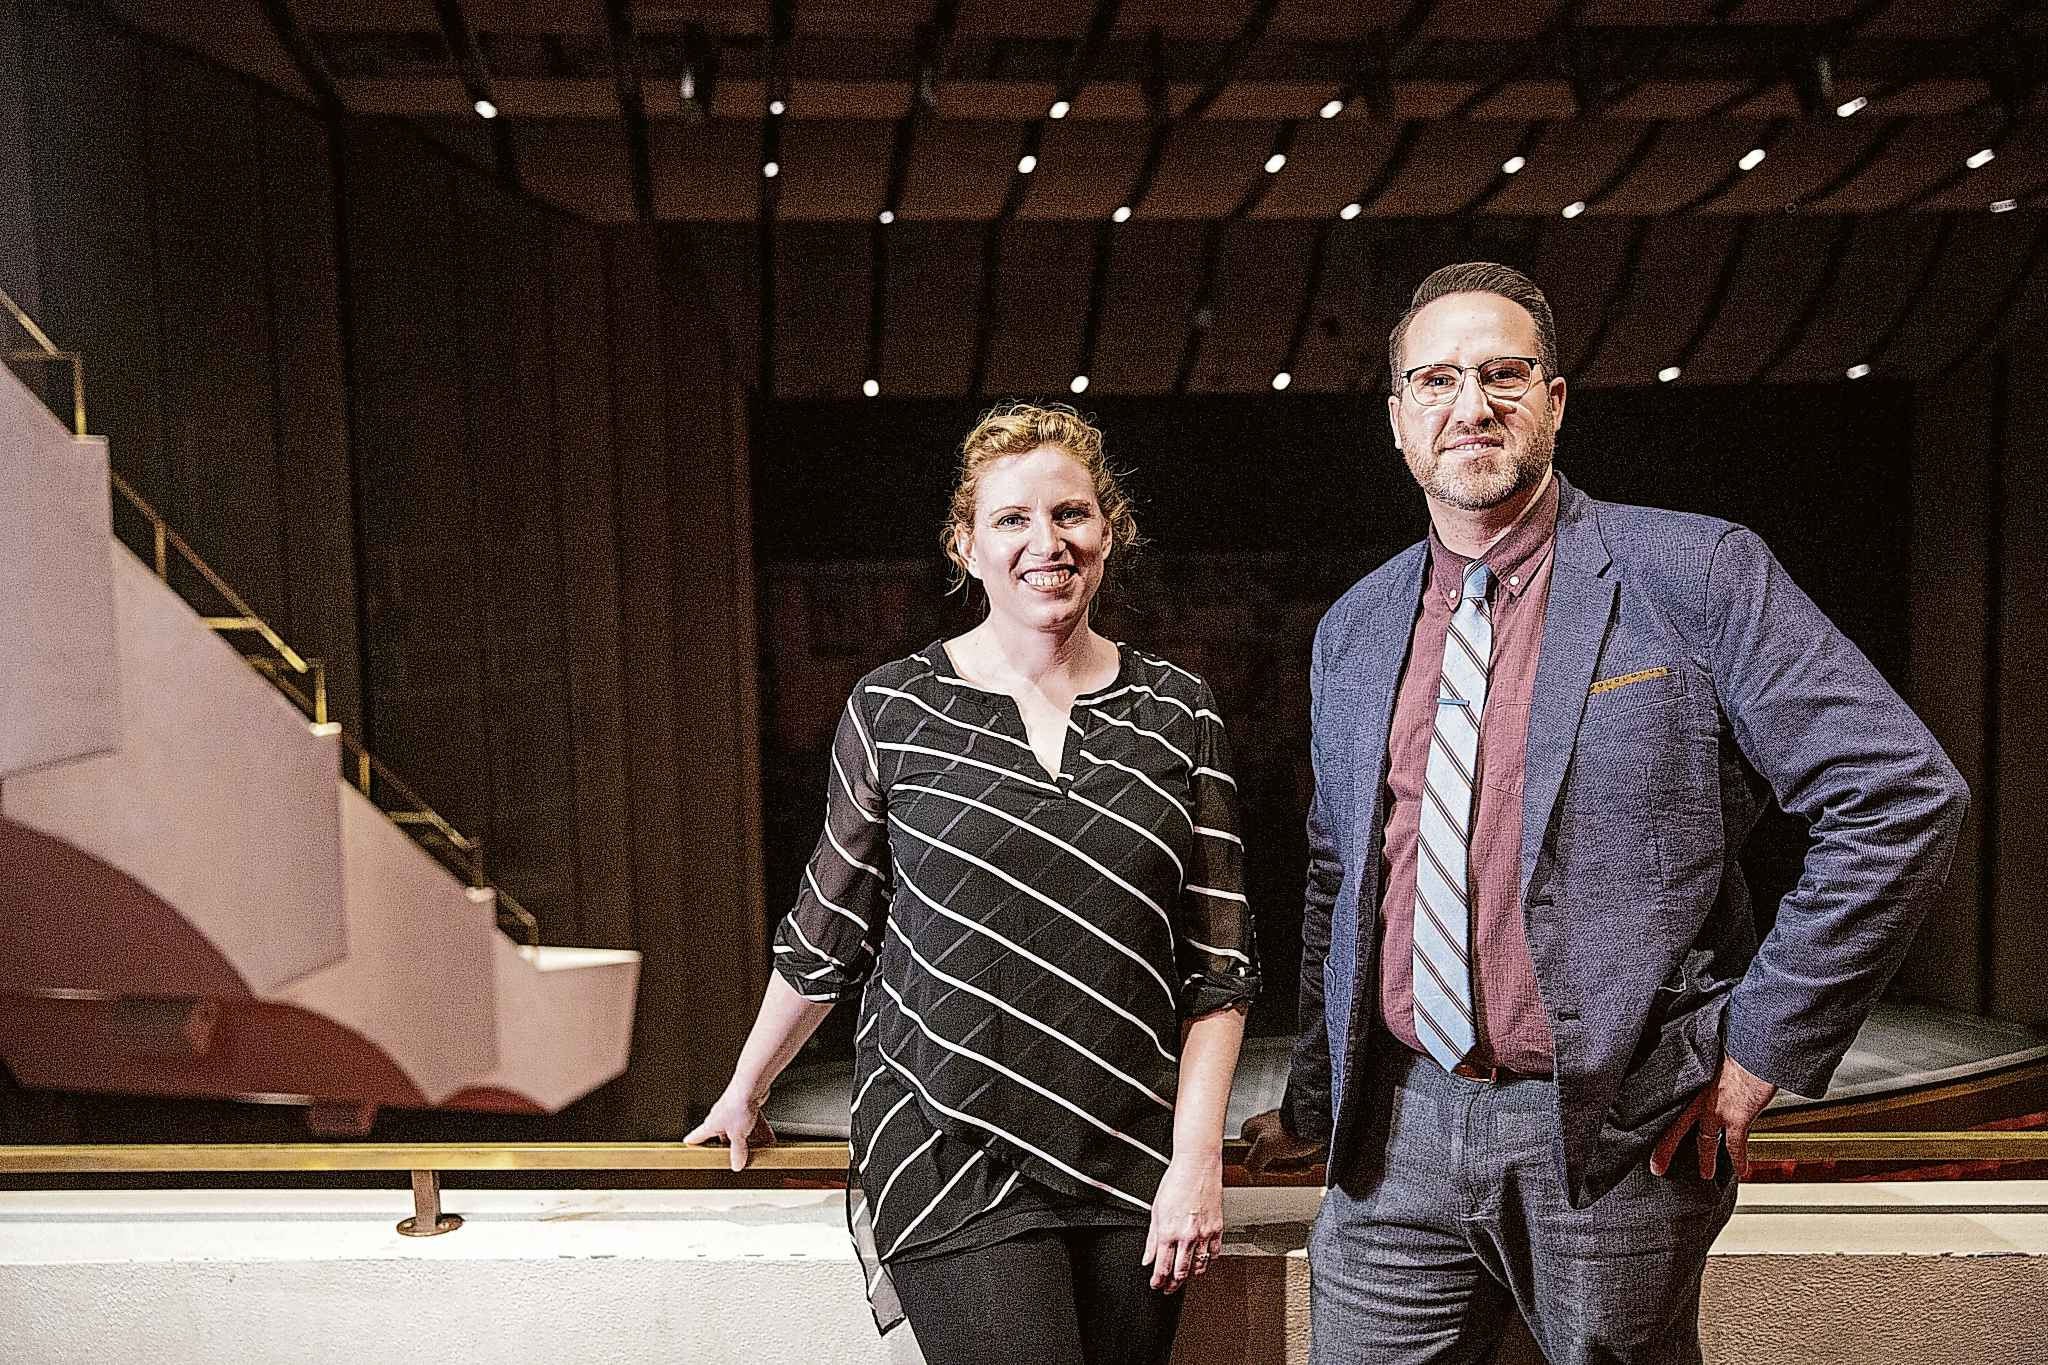 Michelle Yaciuk of Prelude Music and Brent Johnson of the WSO have teamed up to make WSO performances accesssible to those with sensory processing differences. (Mikaela MacKenzie / Winnipeg Free Press)